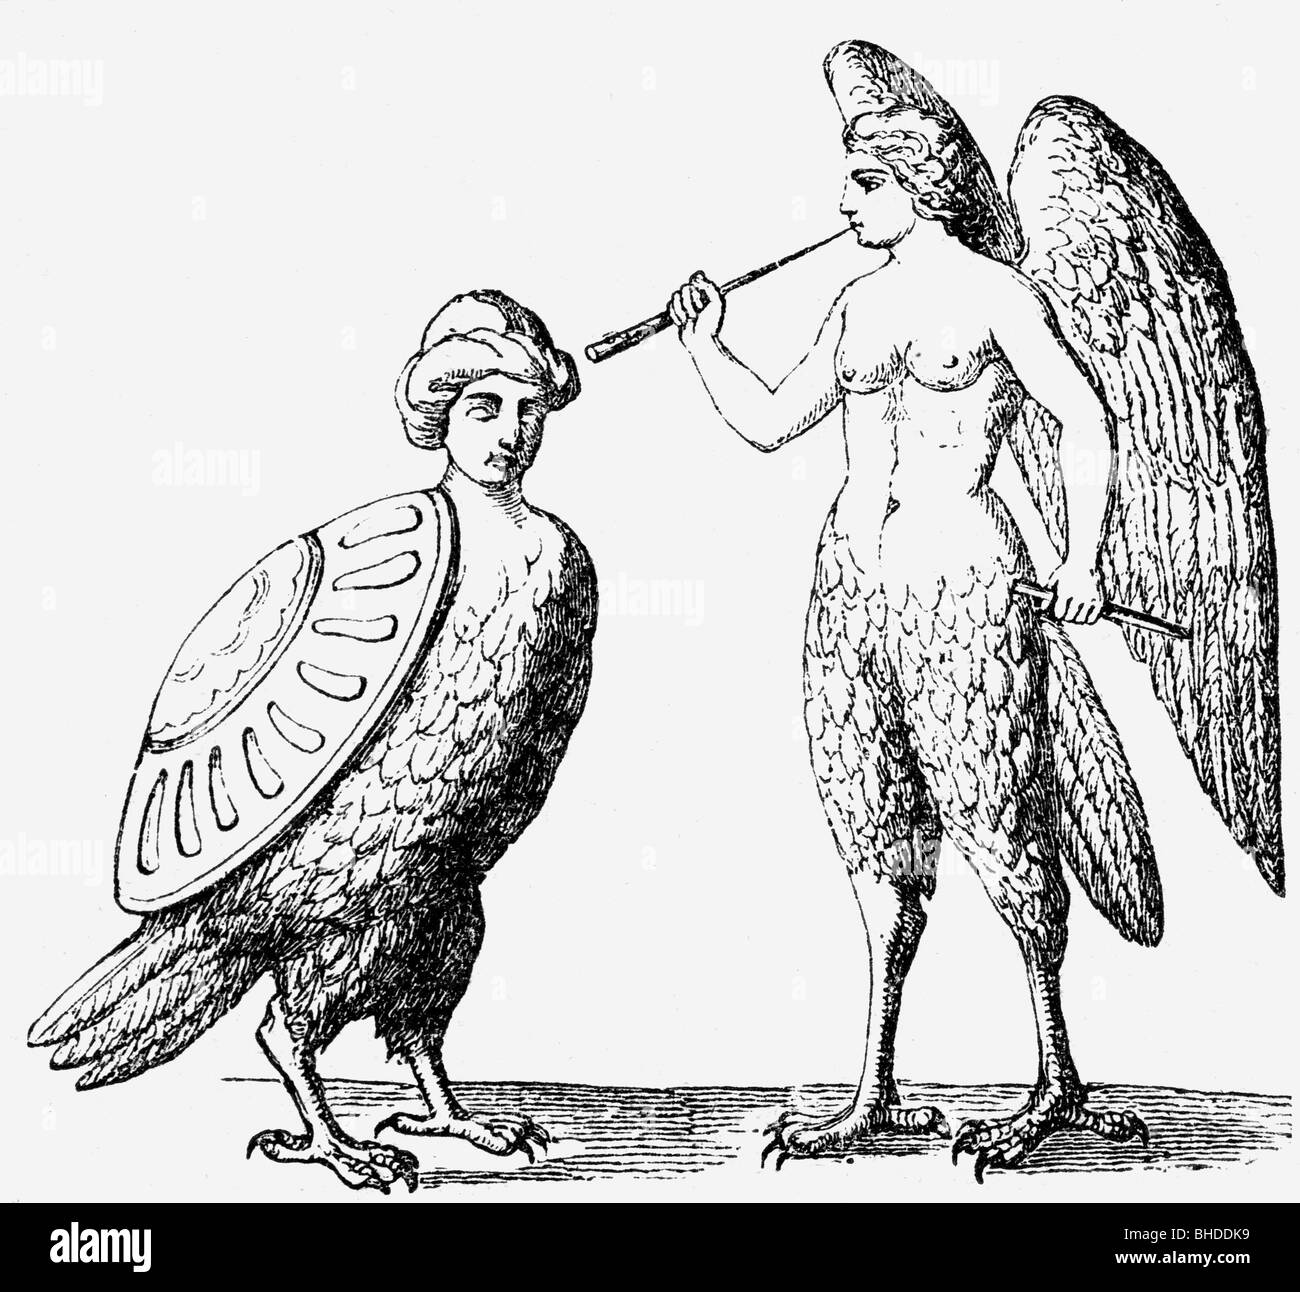 Harpy - a bird with a mythological name